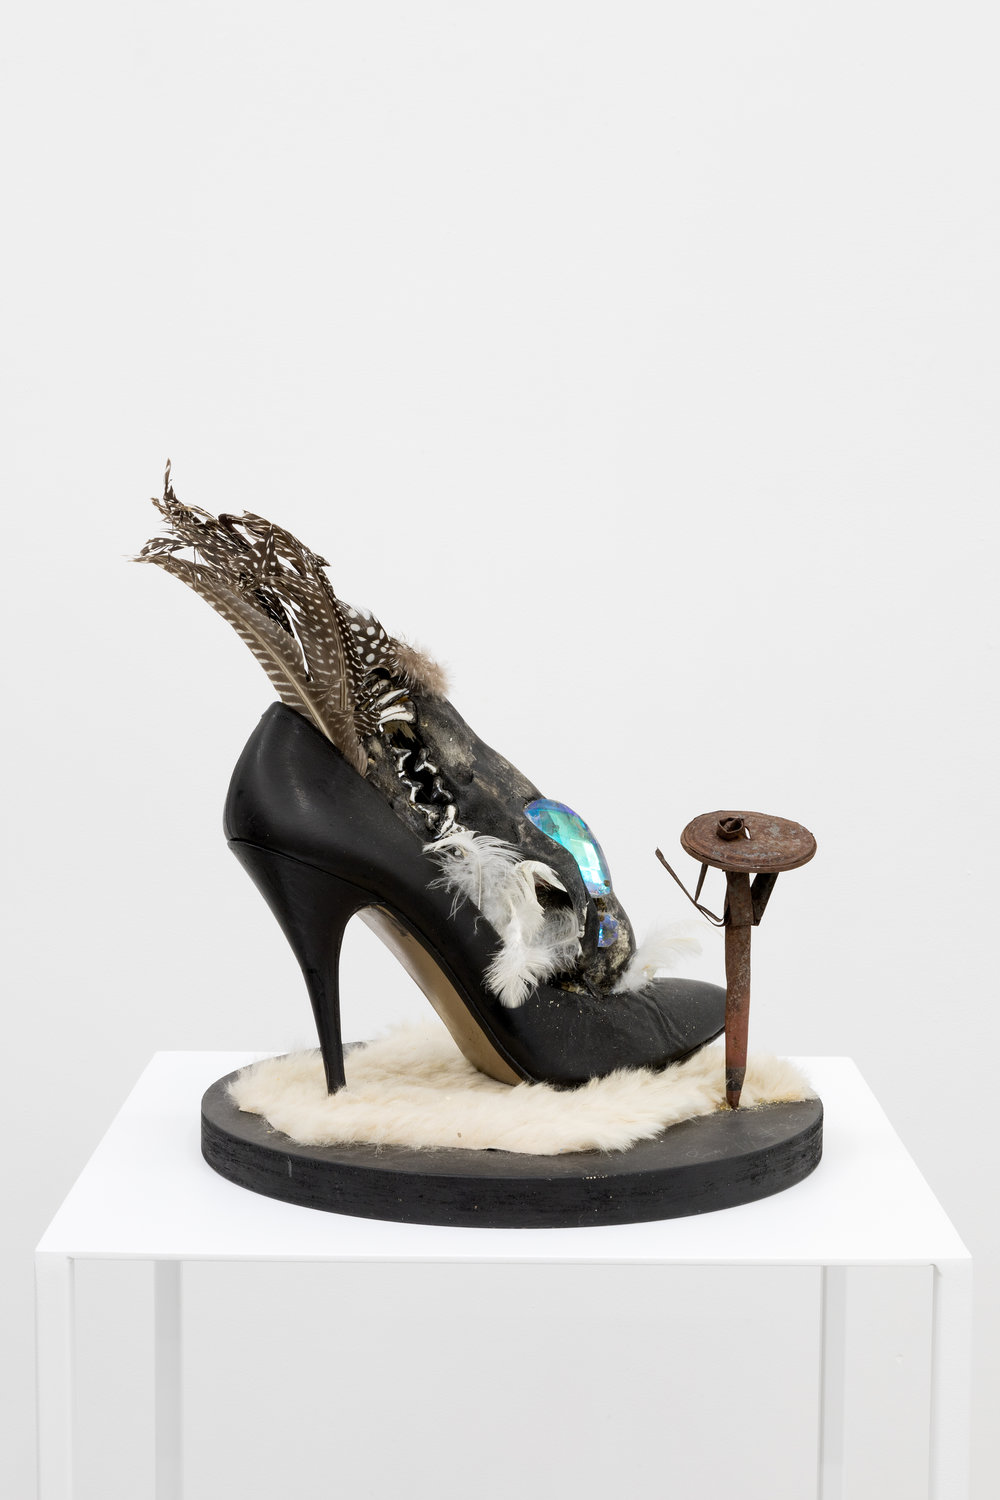 Genesis BREYER P-ORRIDGE,  Shoe Horn #6